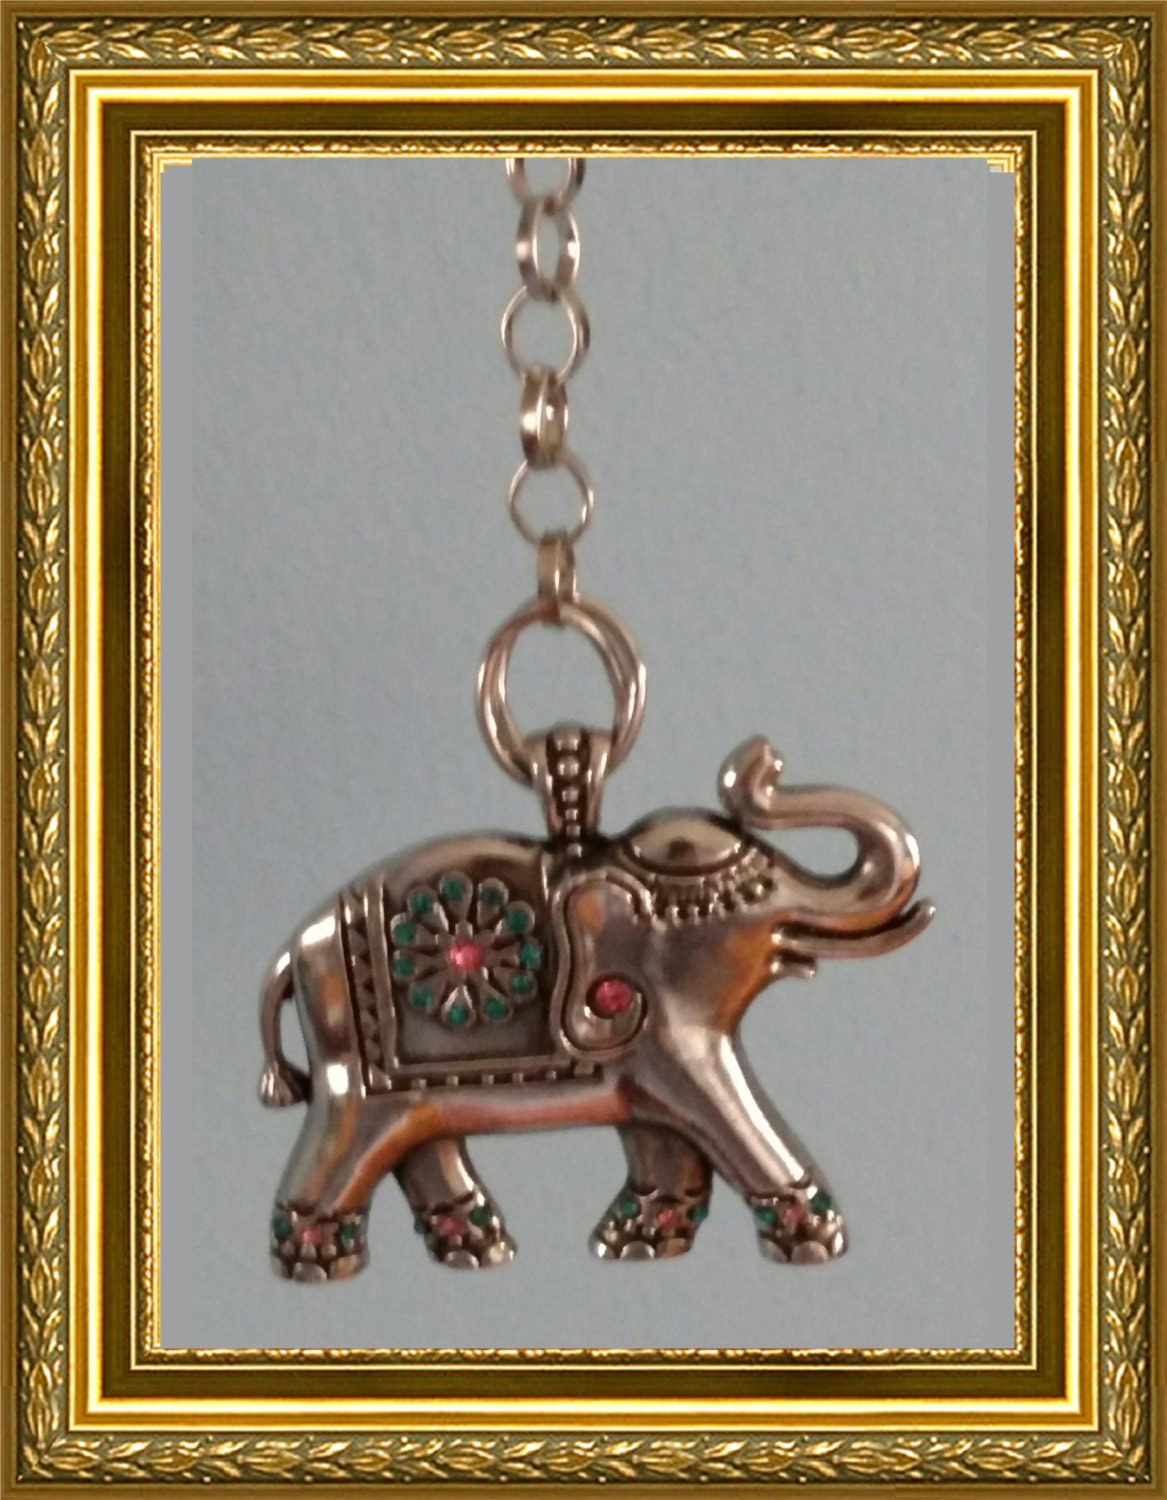 Elephant Ceiling Fan Pull Chain Home Decor Silver Link Chain Silver Elephant